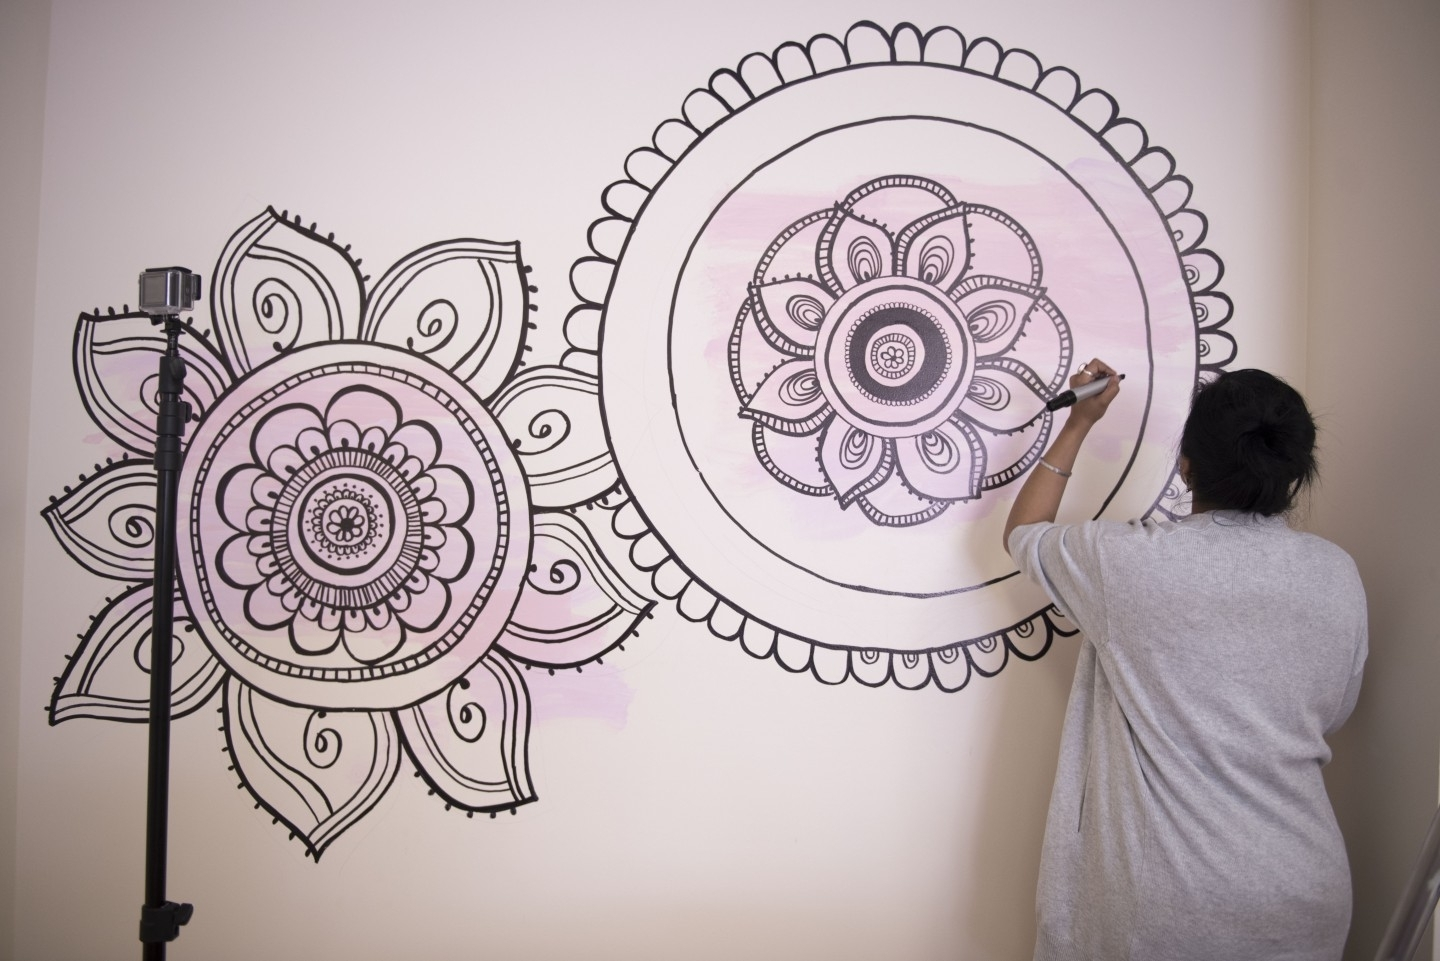 With A Sharpie And No Stencils! with regard to Mandala Wall Art